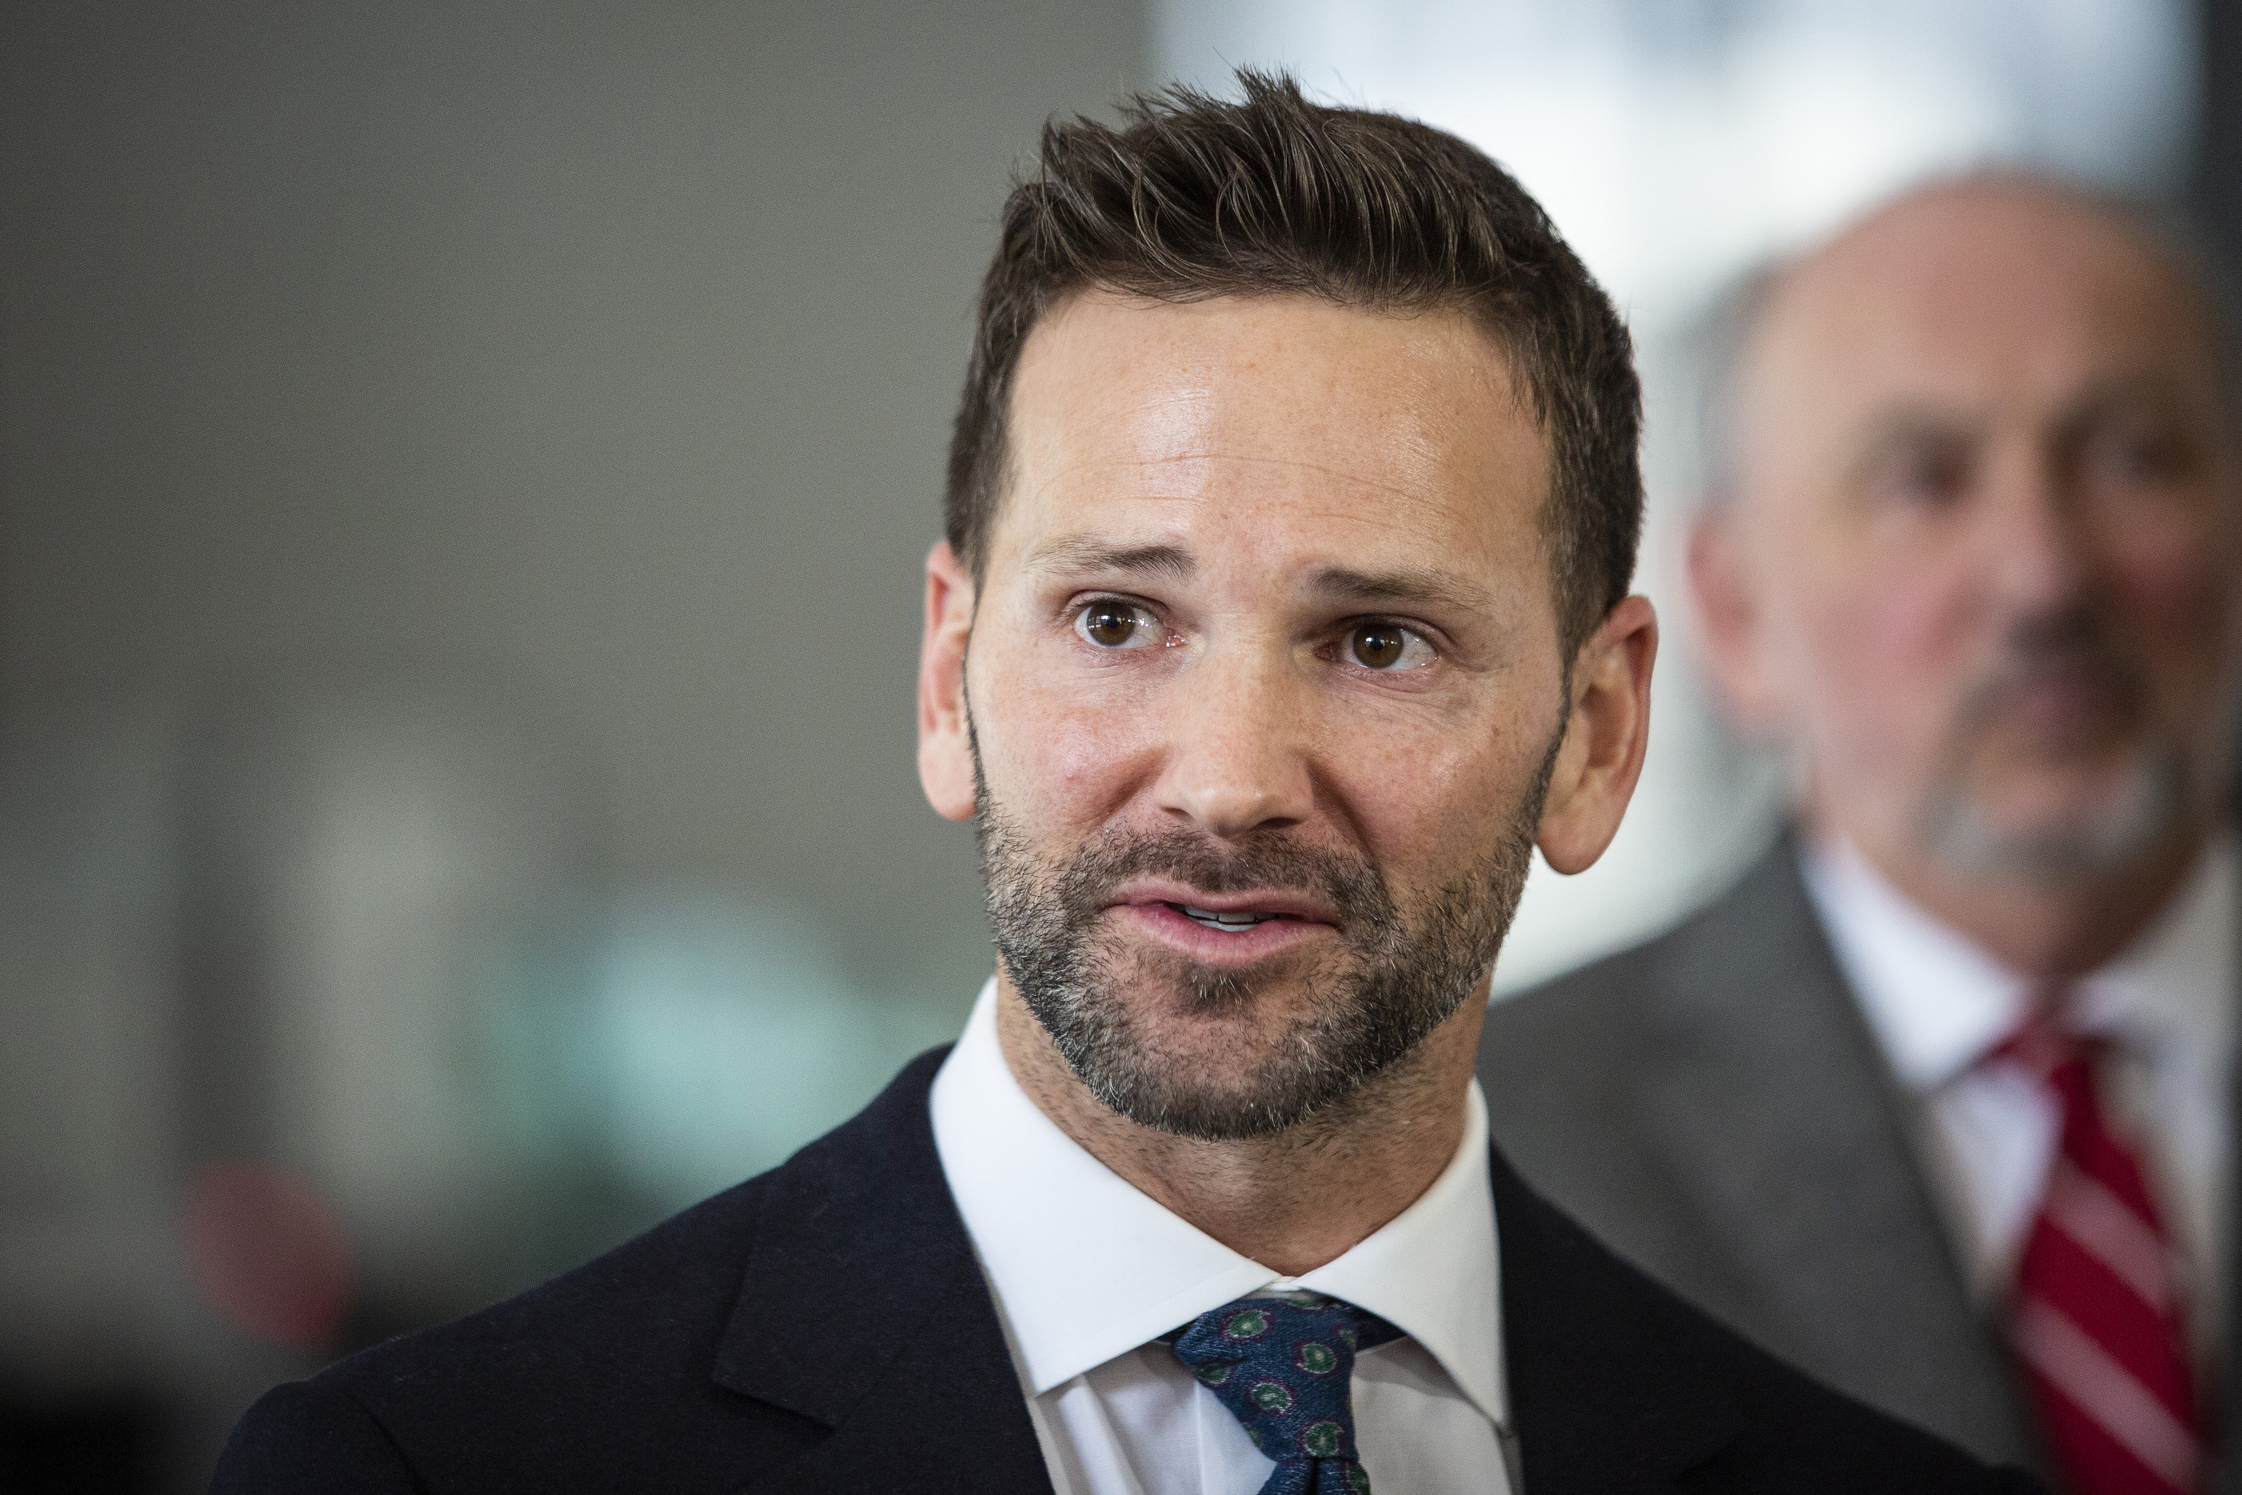 In this March 6, 2019 file photo, former U.S. Rep. Aaron Schock, R-Ill., speaks to reporters at the Dirksen Federal Courthouse in Chicago.